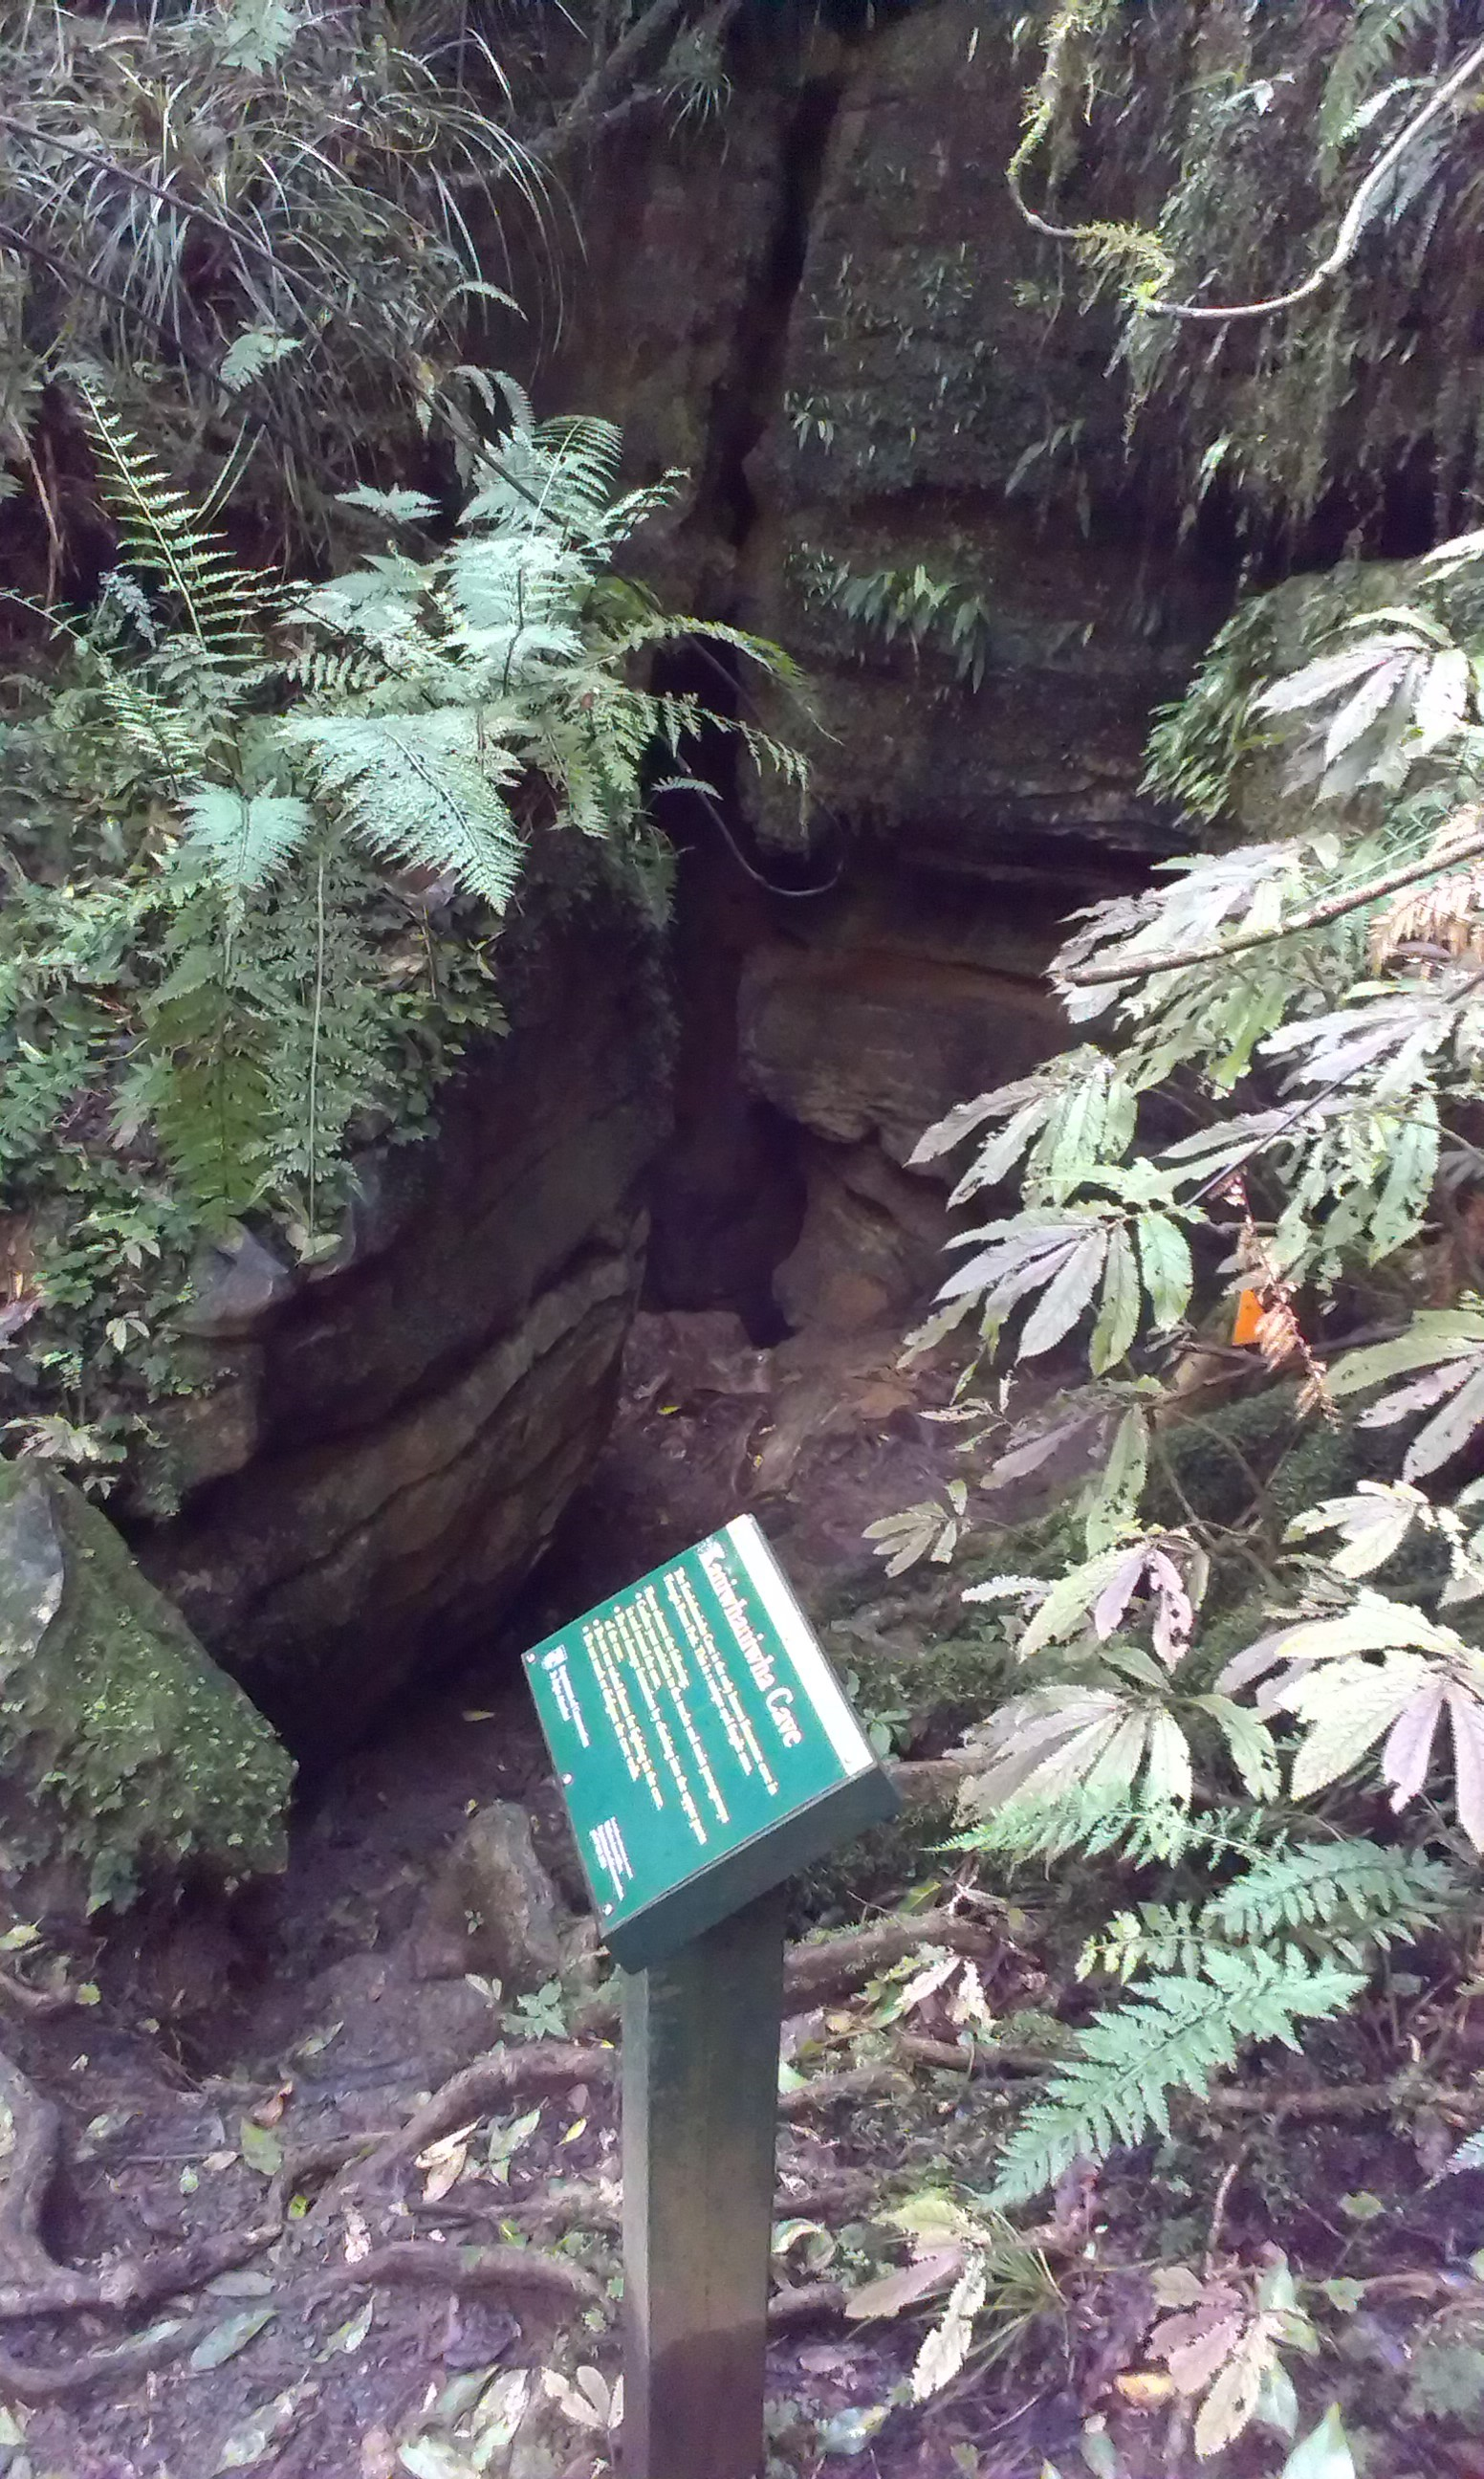 Kaniwhaniwha Cave Walk, Mt Pirongia